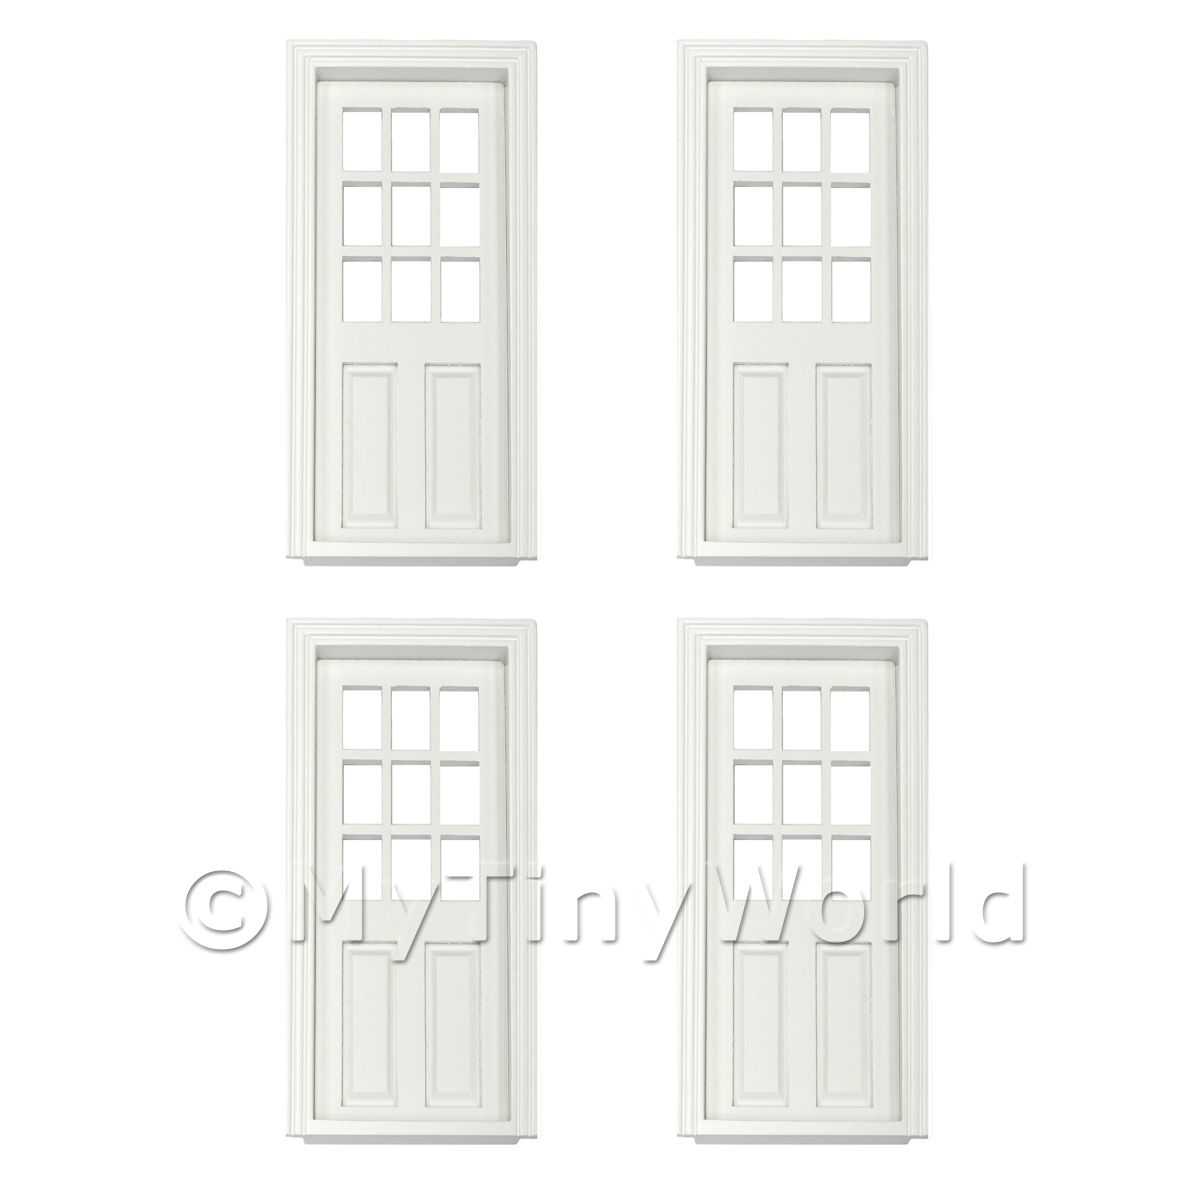 4 x Dolls House Miniature White Painted 9 Panel Glazed Wood Doors